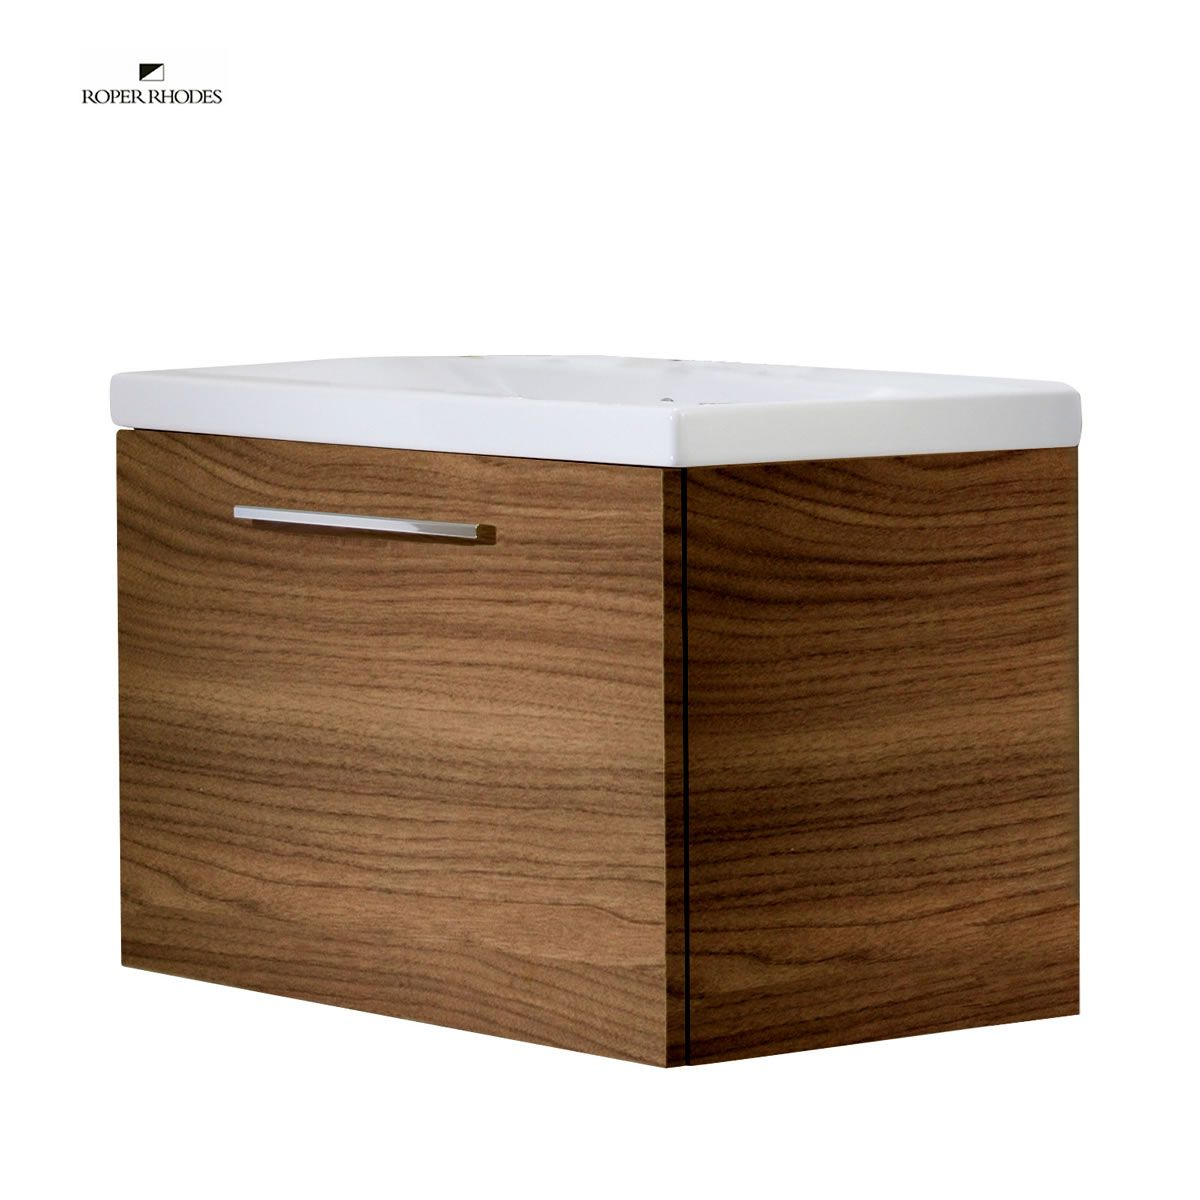 Roper rhodes envy 700mm wall hung unit with basin uk for Bathroom furniture 700mm